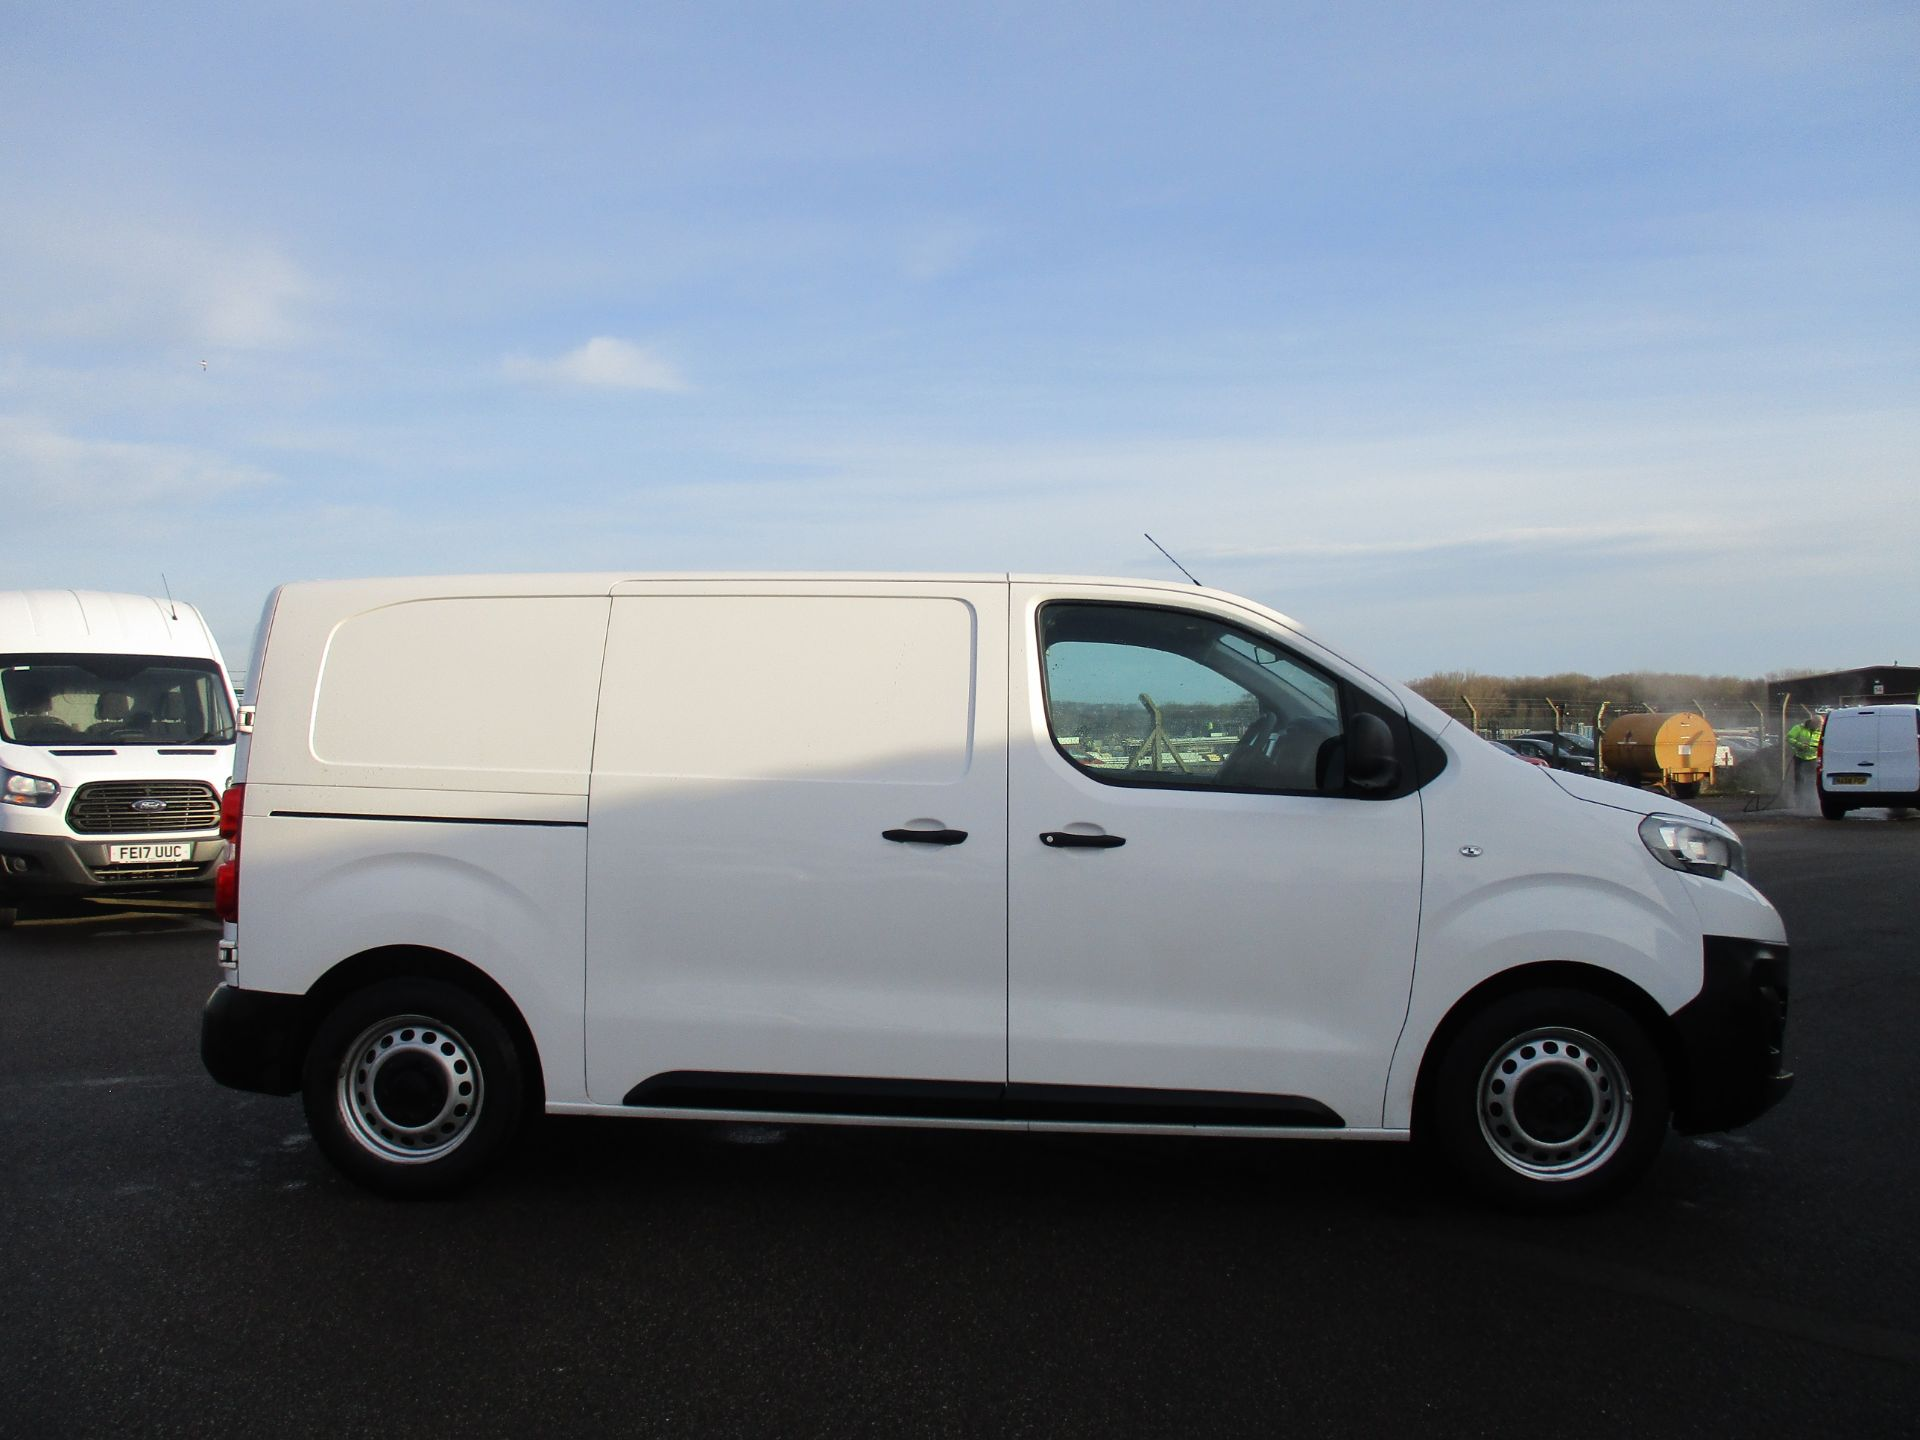 2018 Peugeot Expert STANDARD 1000 1.6 BLUE HDI 95 PROFESSIONAL EURO 6. AIR CON (NU68GHN) Image 4